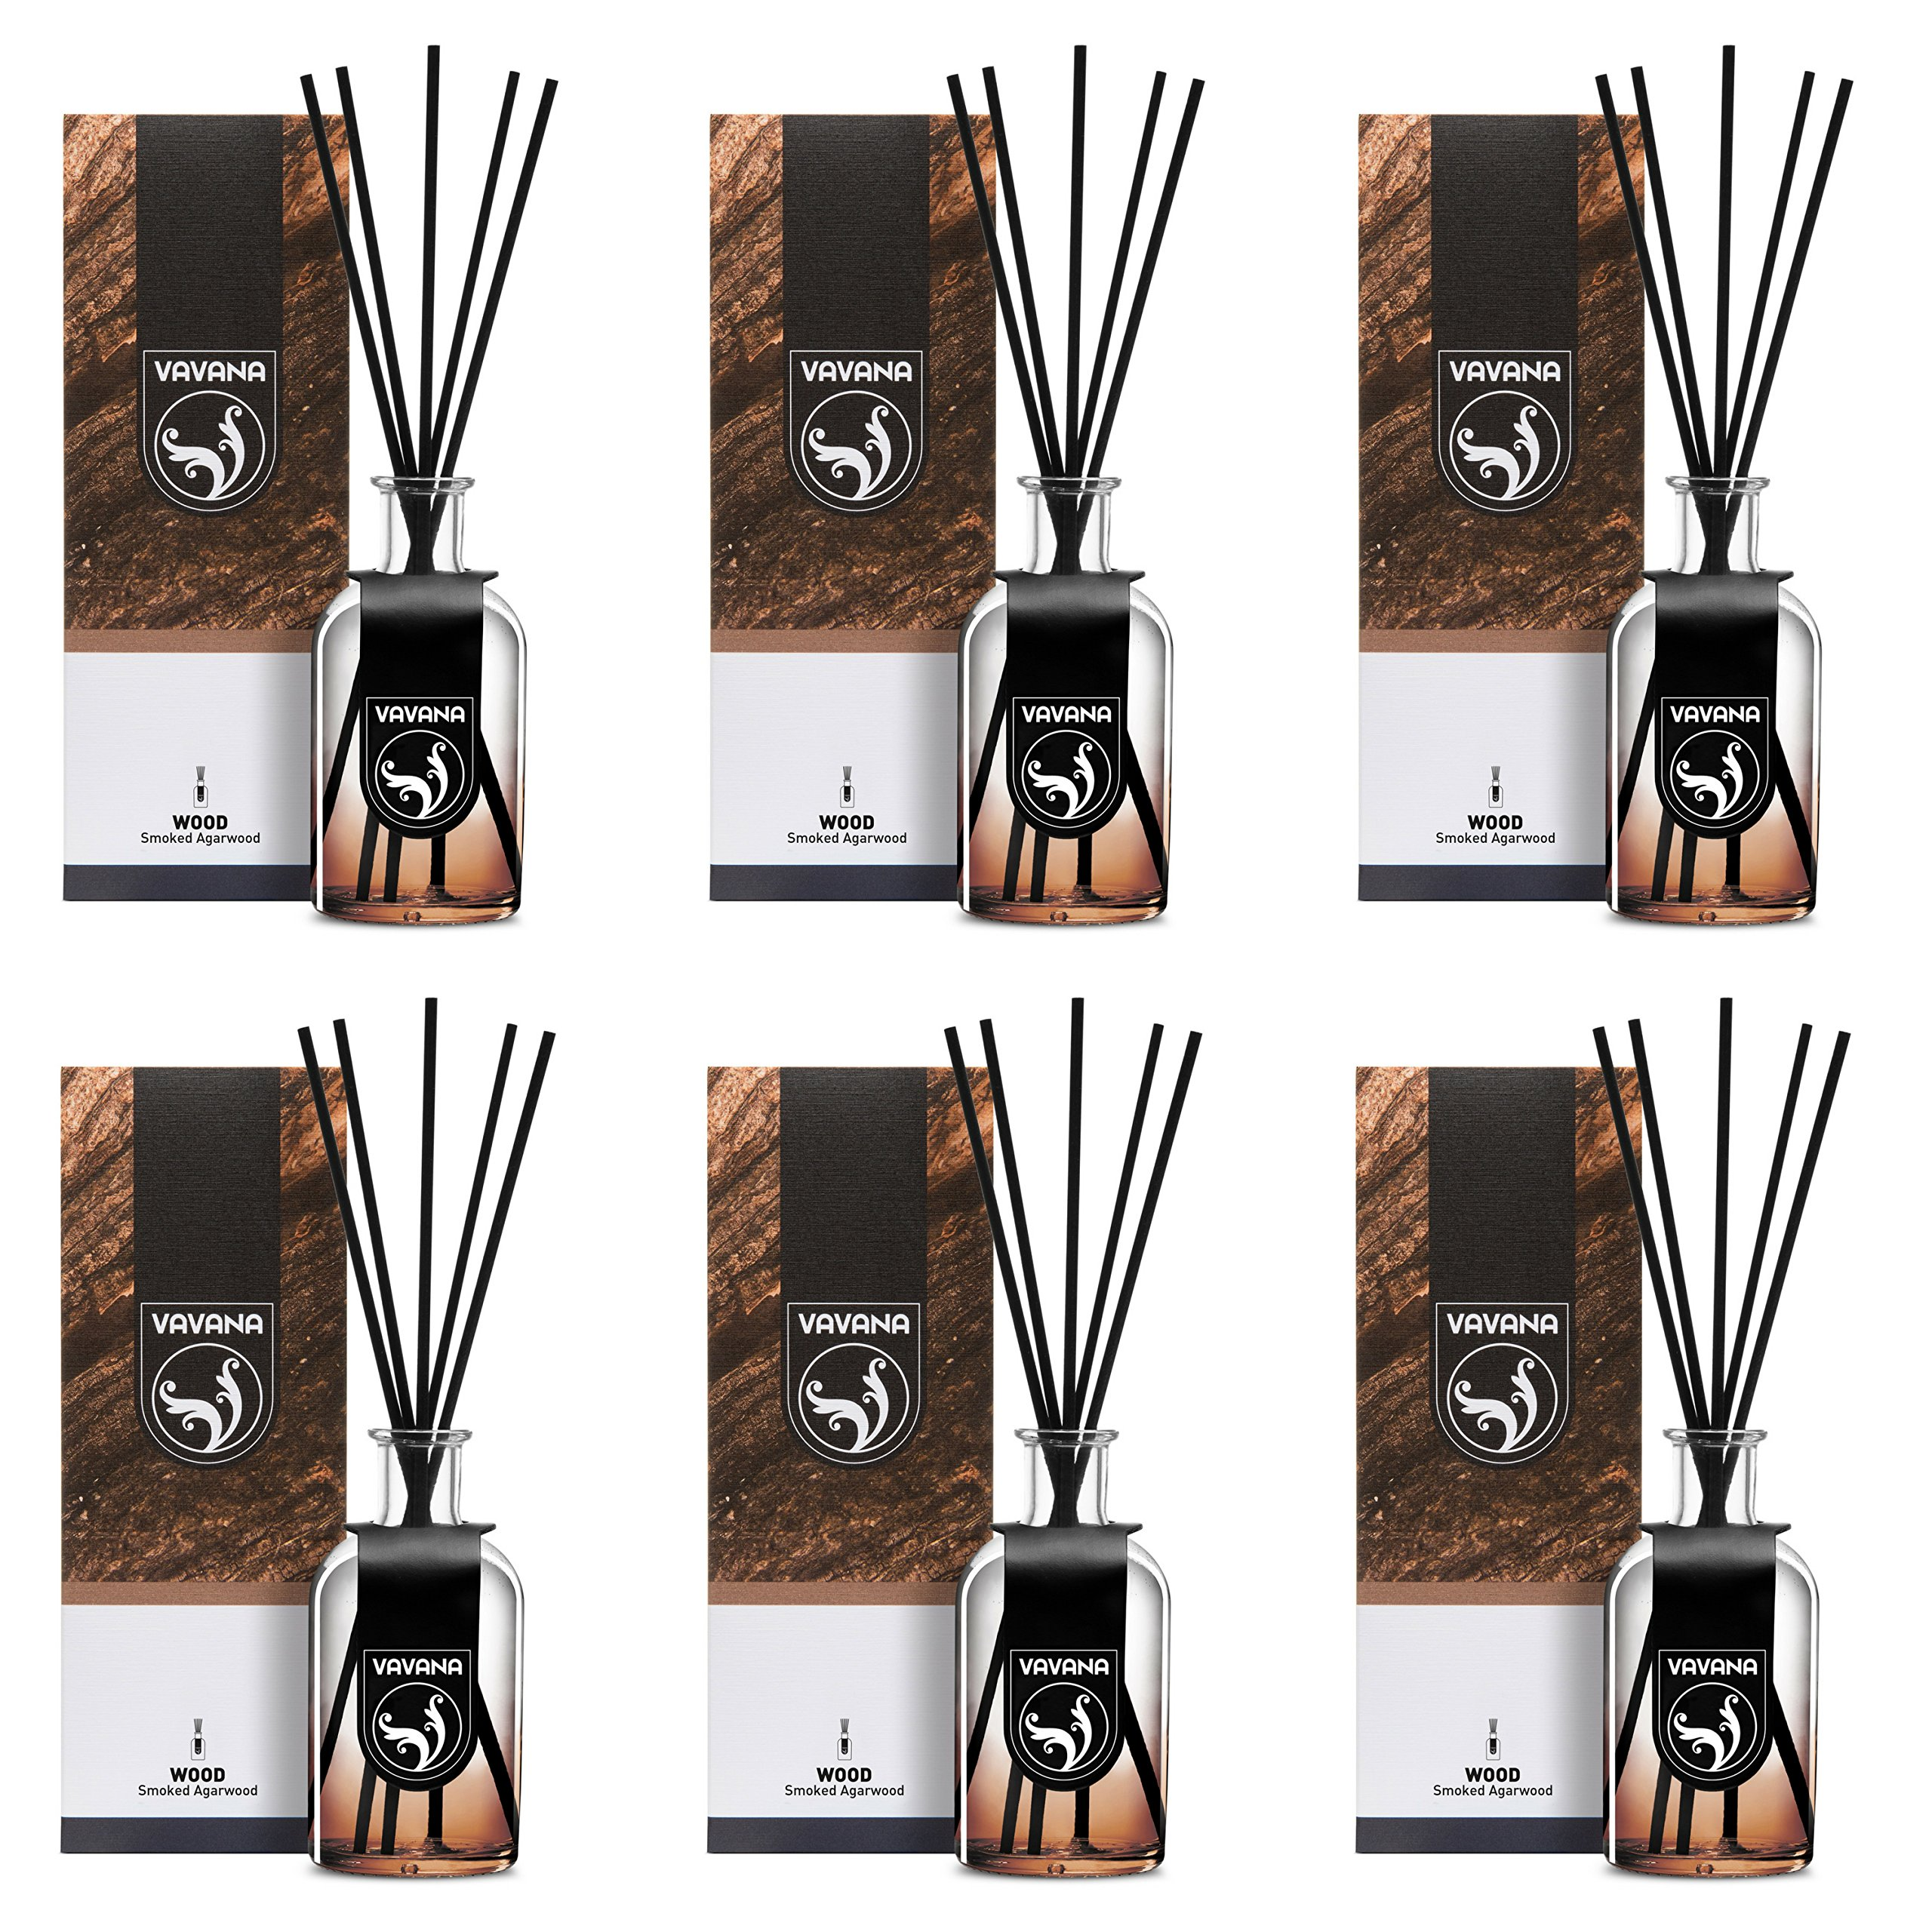 VAVANA Aromatherapy Diffuser Sticks | Reed Diffuser Set | Aromatic Home Fragrance Set | Essential Oil Diffuser Sticks, Made of Natural Scented Oils Blend | 100 ML/3.4 OZ - 6 Pack (Smoked A.Wood) by vavana